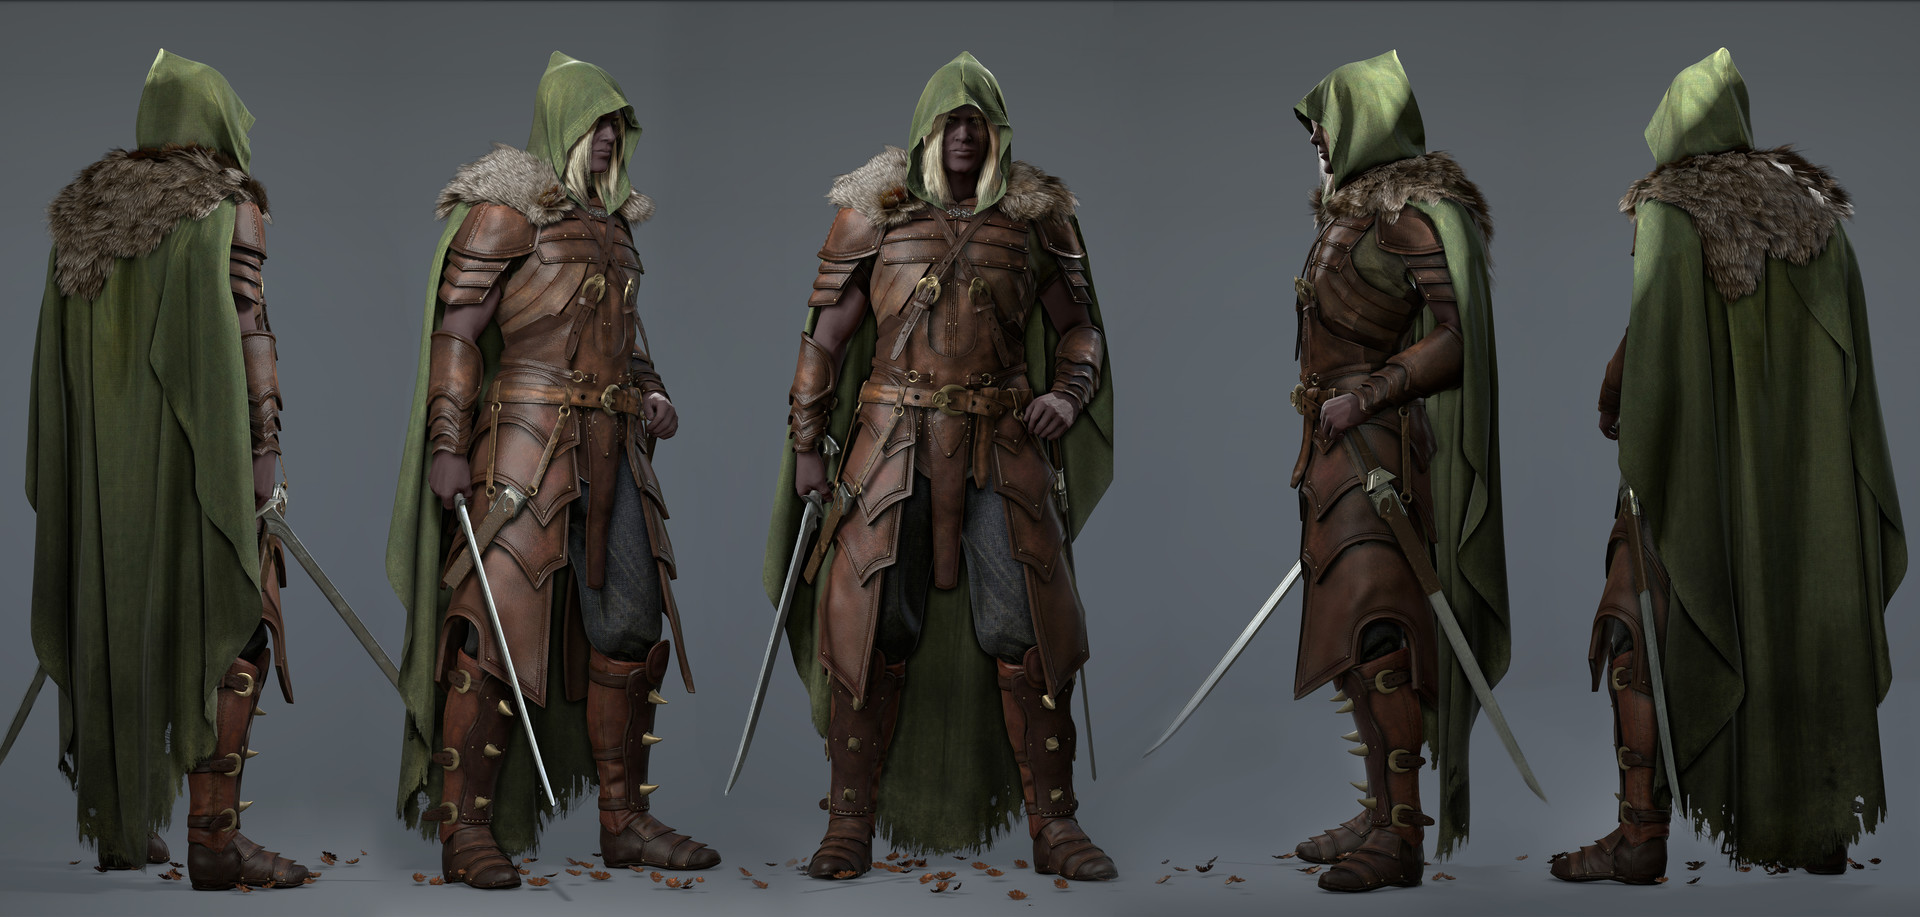 Drizzt 3d Related Keywords & Suggestions - Drizzt 3d Long